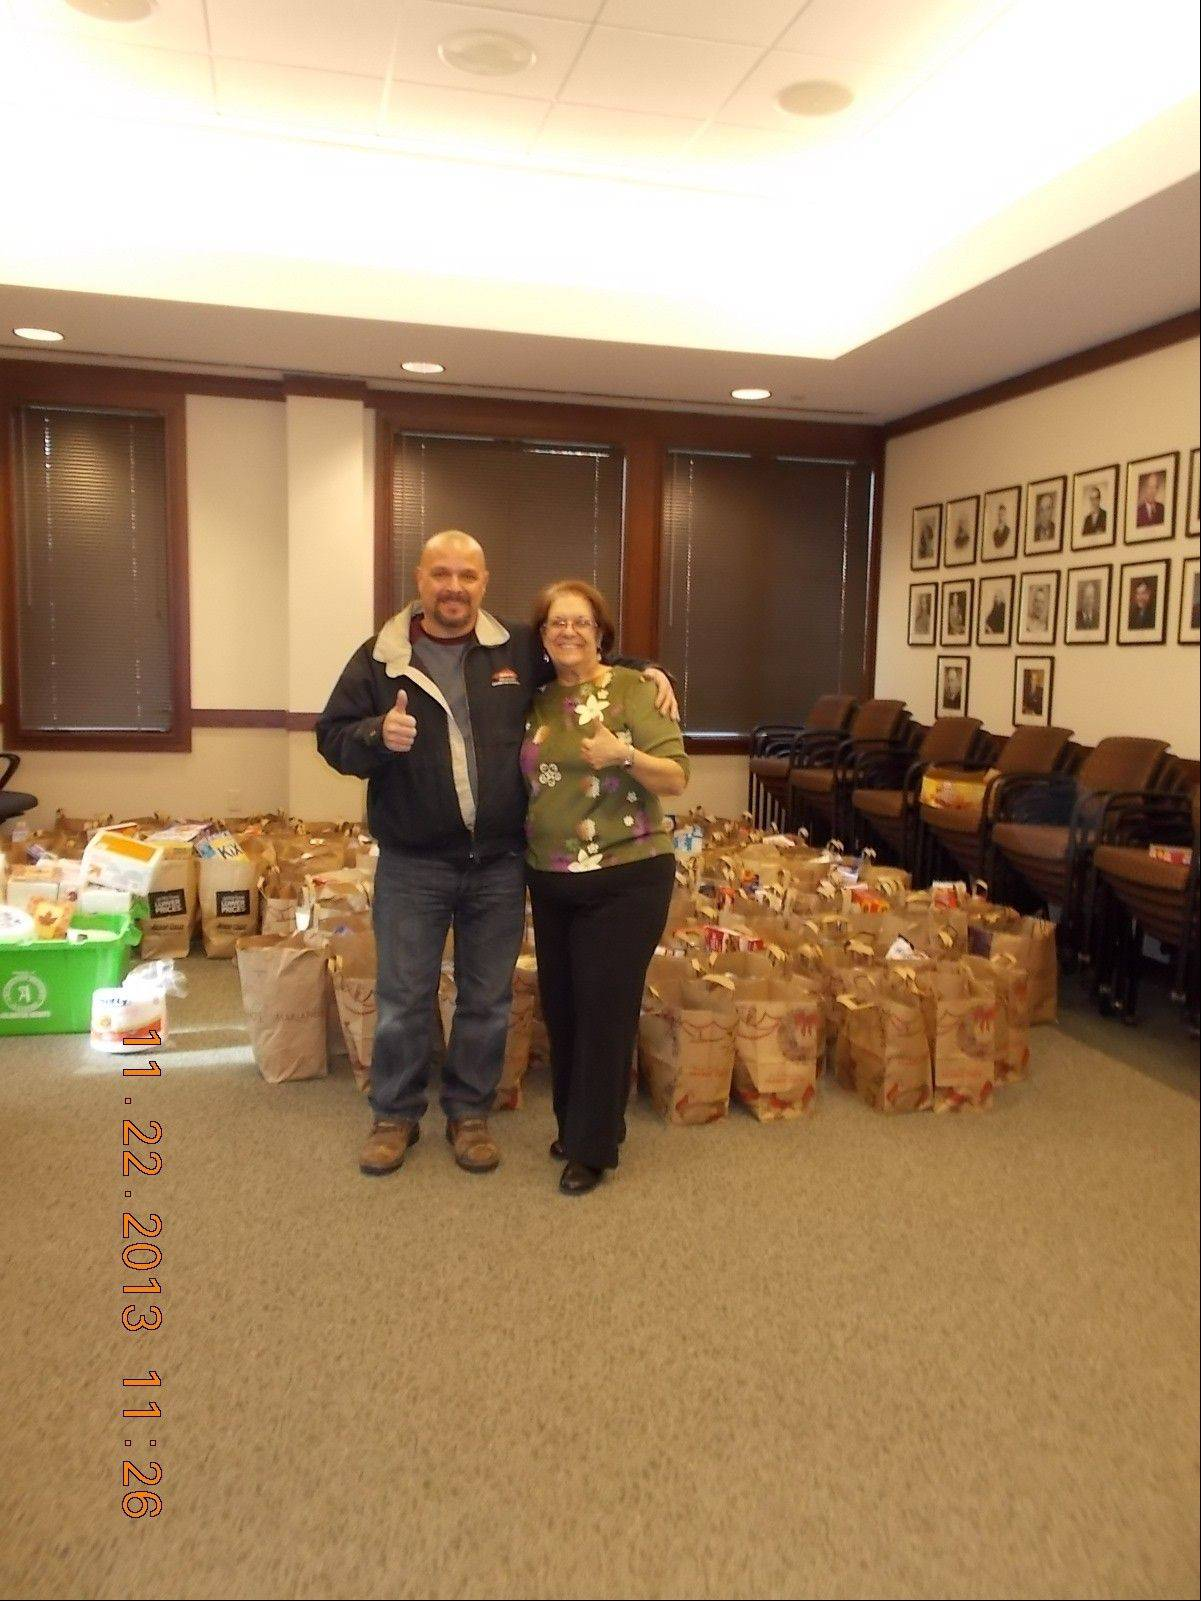 Joe Coriaci, owner of Servpro of Arlington Heights/Prospect Heights with Carol Jancek, from the village of Arlington Heights, where the food was delivered and sorted for delivery to families in need.